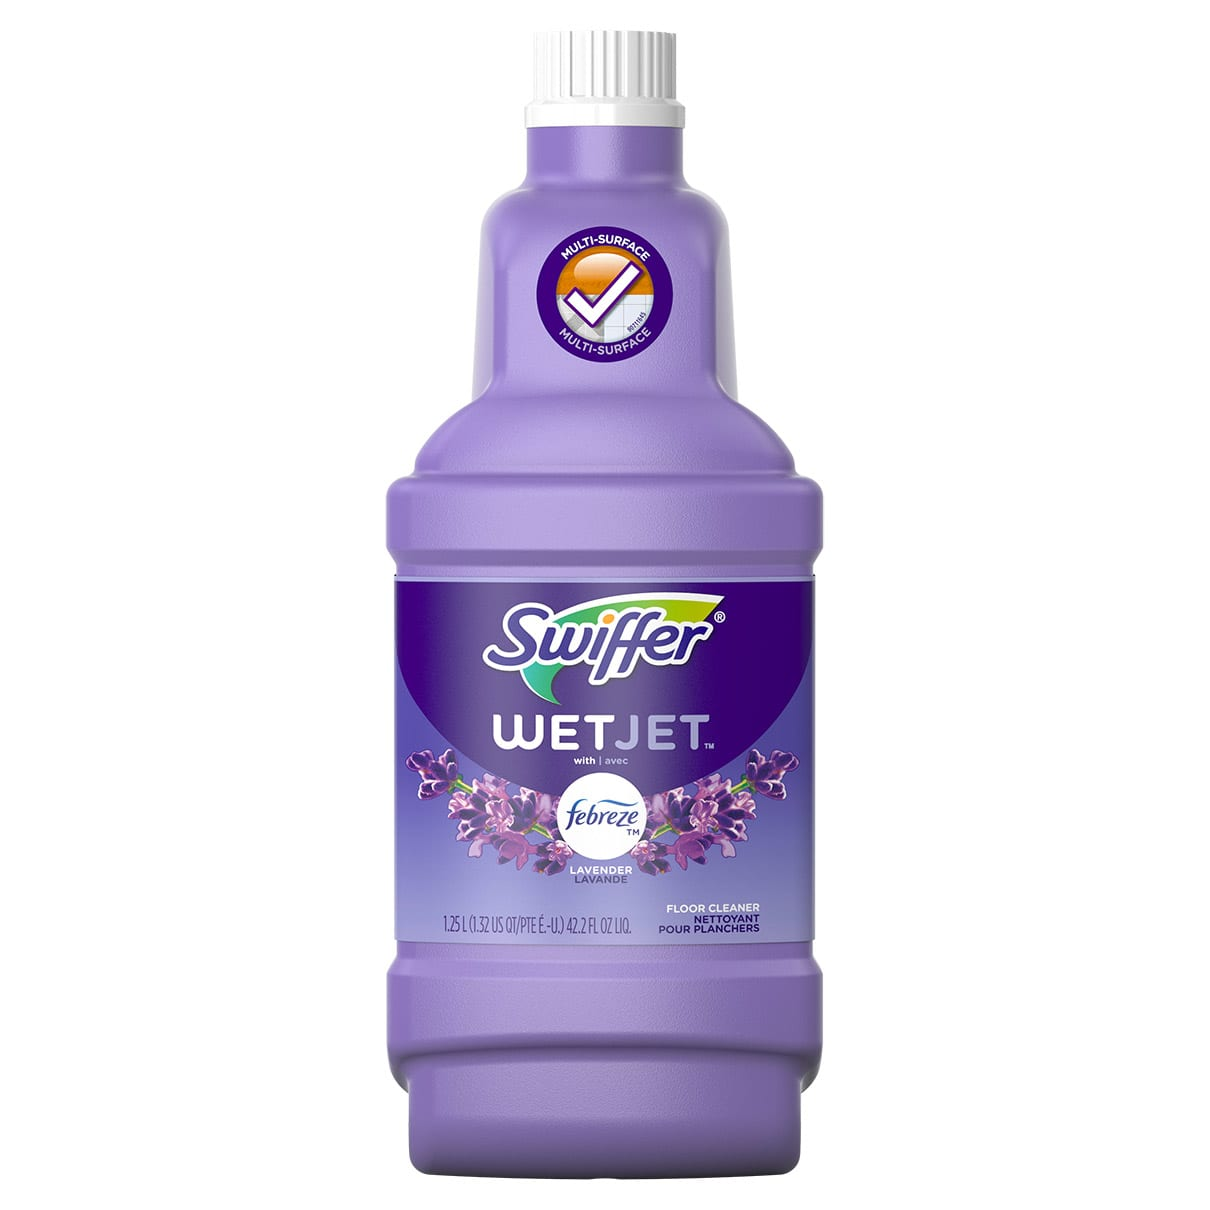 Swiffer WetJet Solution Febreze Lavender